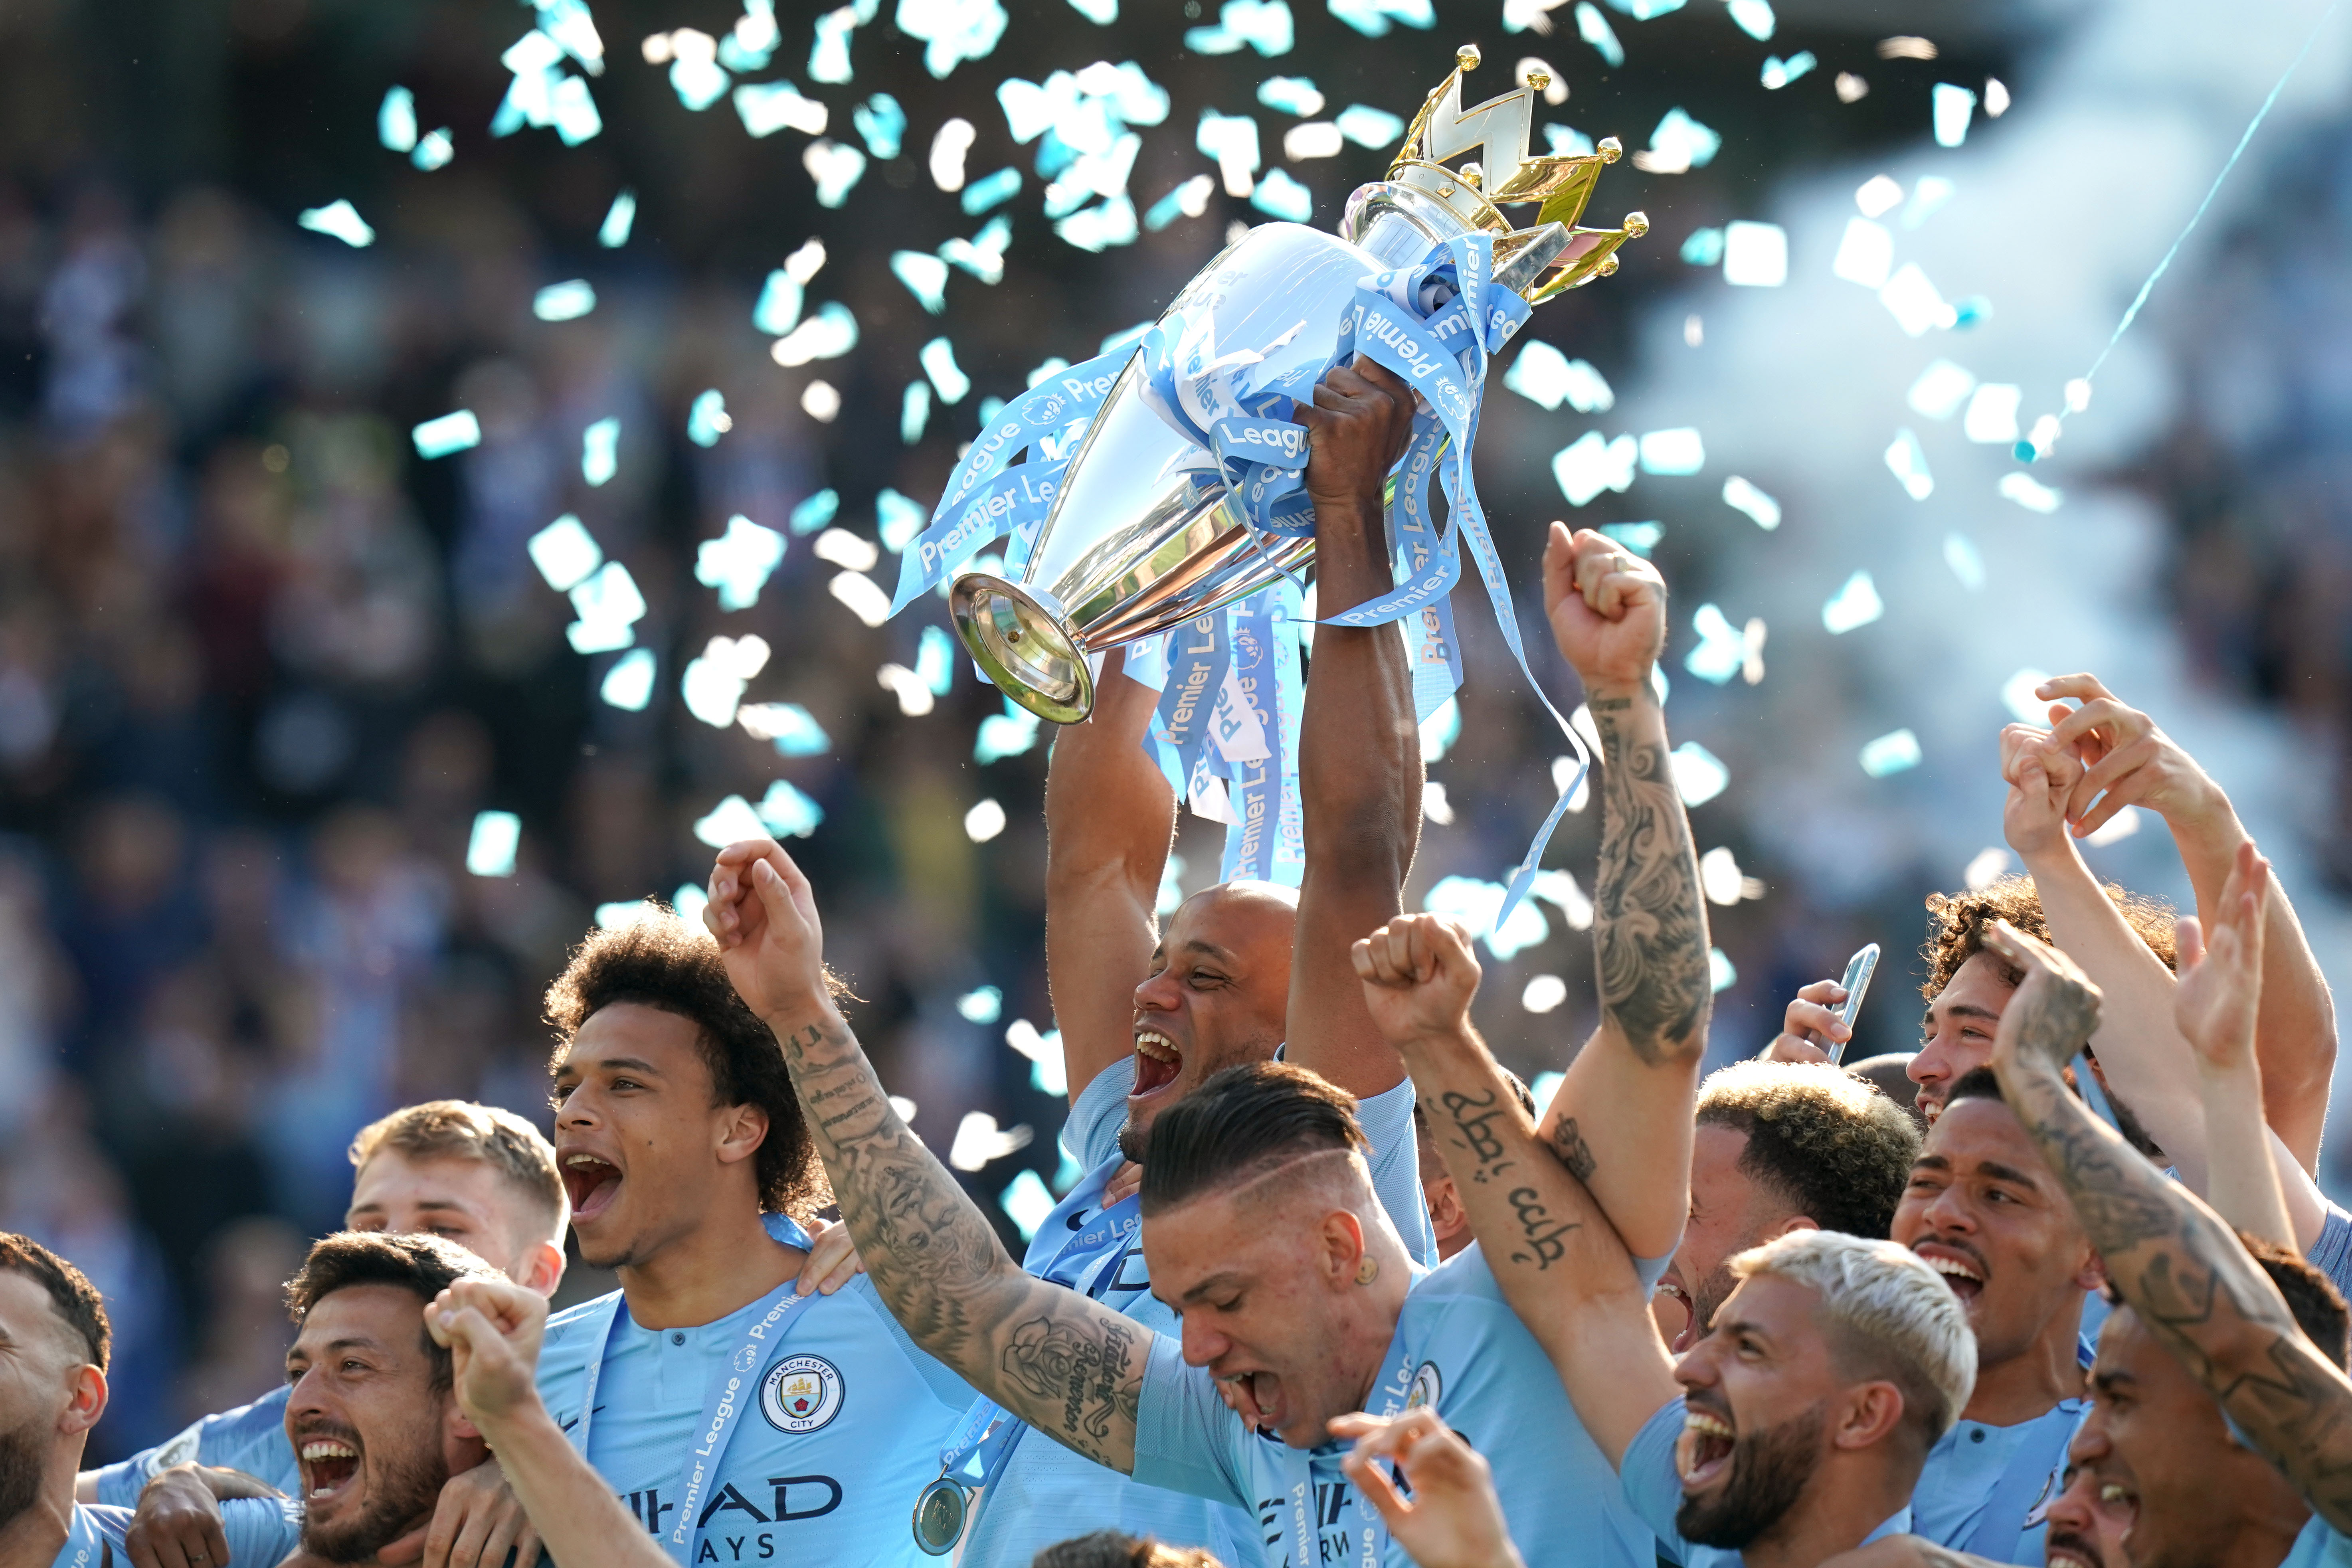 Manchester City captain Vincent Kompany lifts the Premier League trophy at Brighton in May at the end of a thrilling title race. Pep Guardiola's side retained their crown after coming from a goal down to win 4-1 at the Amex Stadium and finish a single point ahead of rivals Liverpool